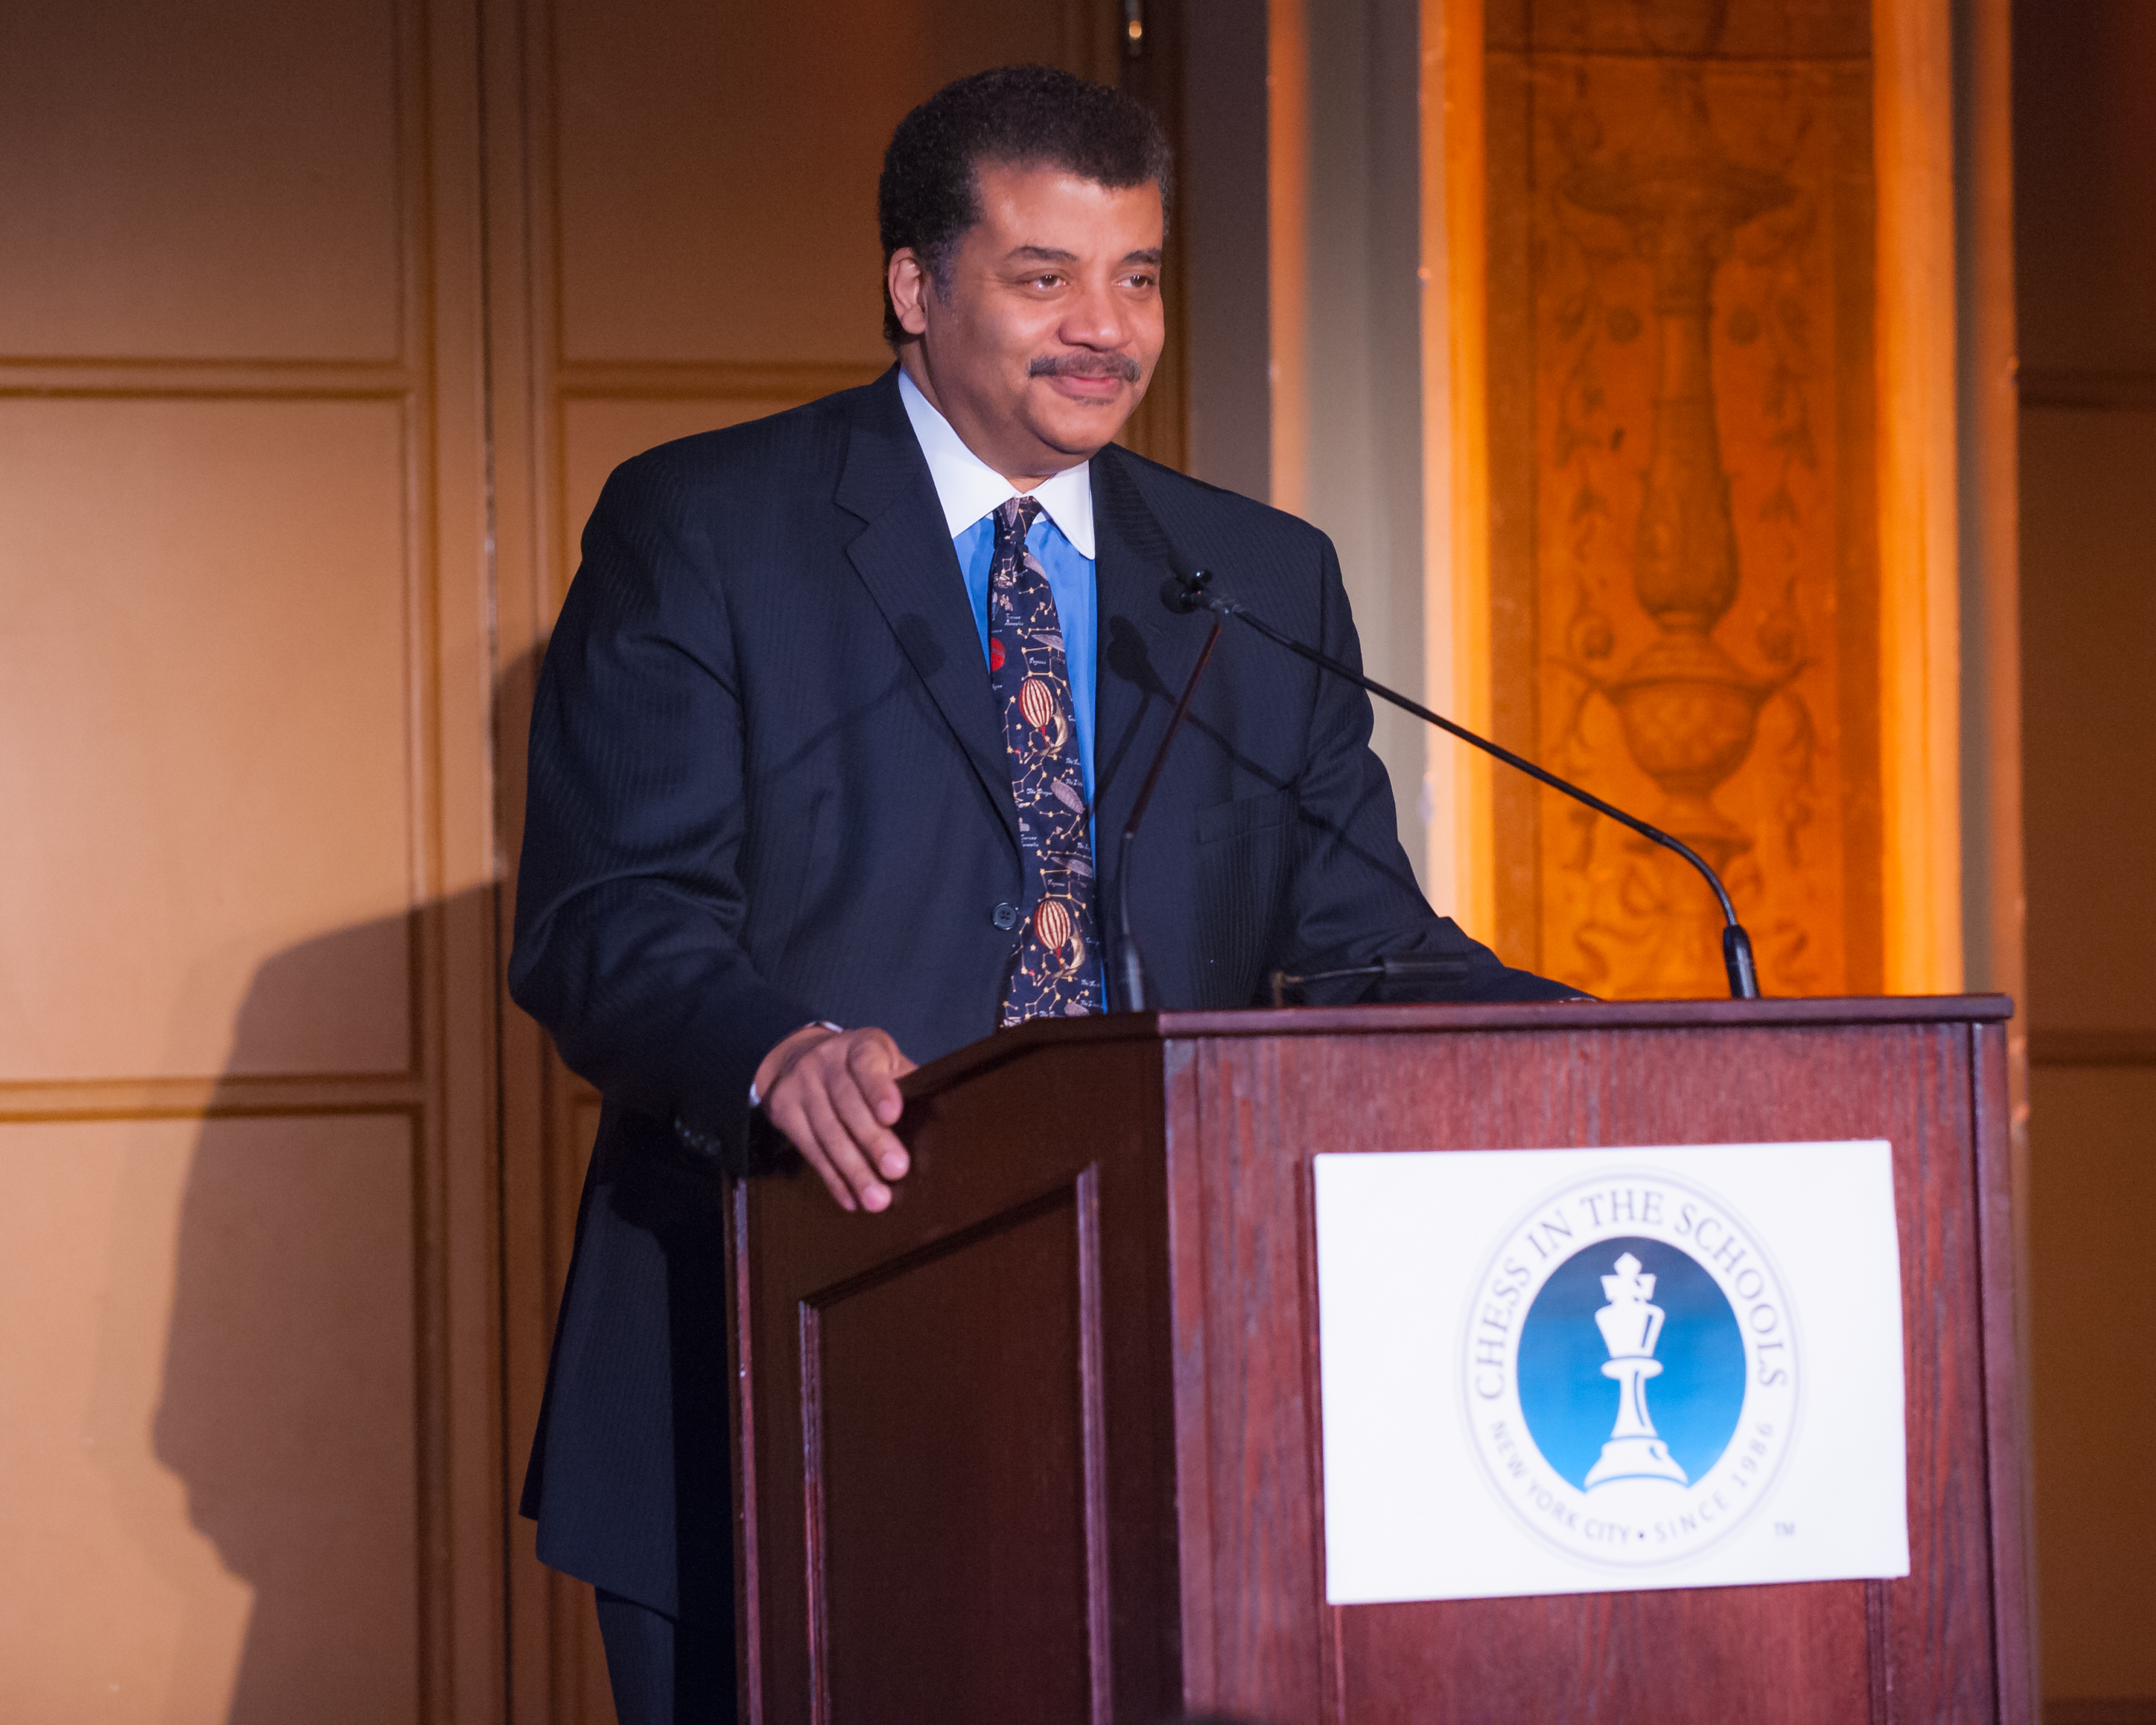 Dr. Neil deGrasse Tyson delivering an inspiring speech to our guests and 2015 Senior Class.